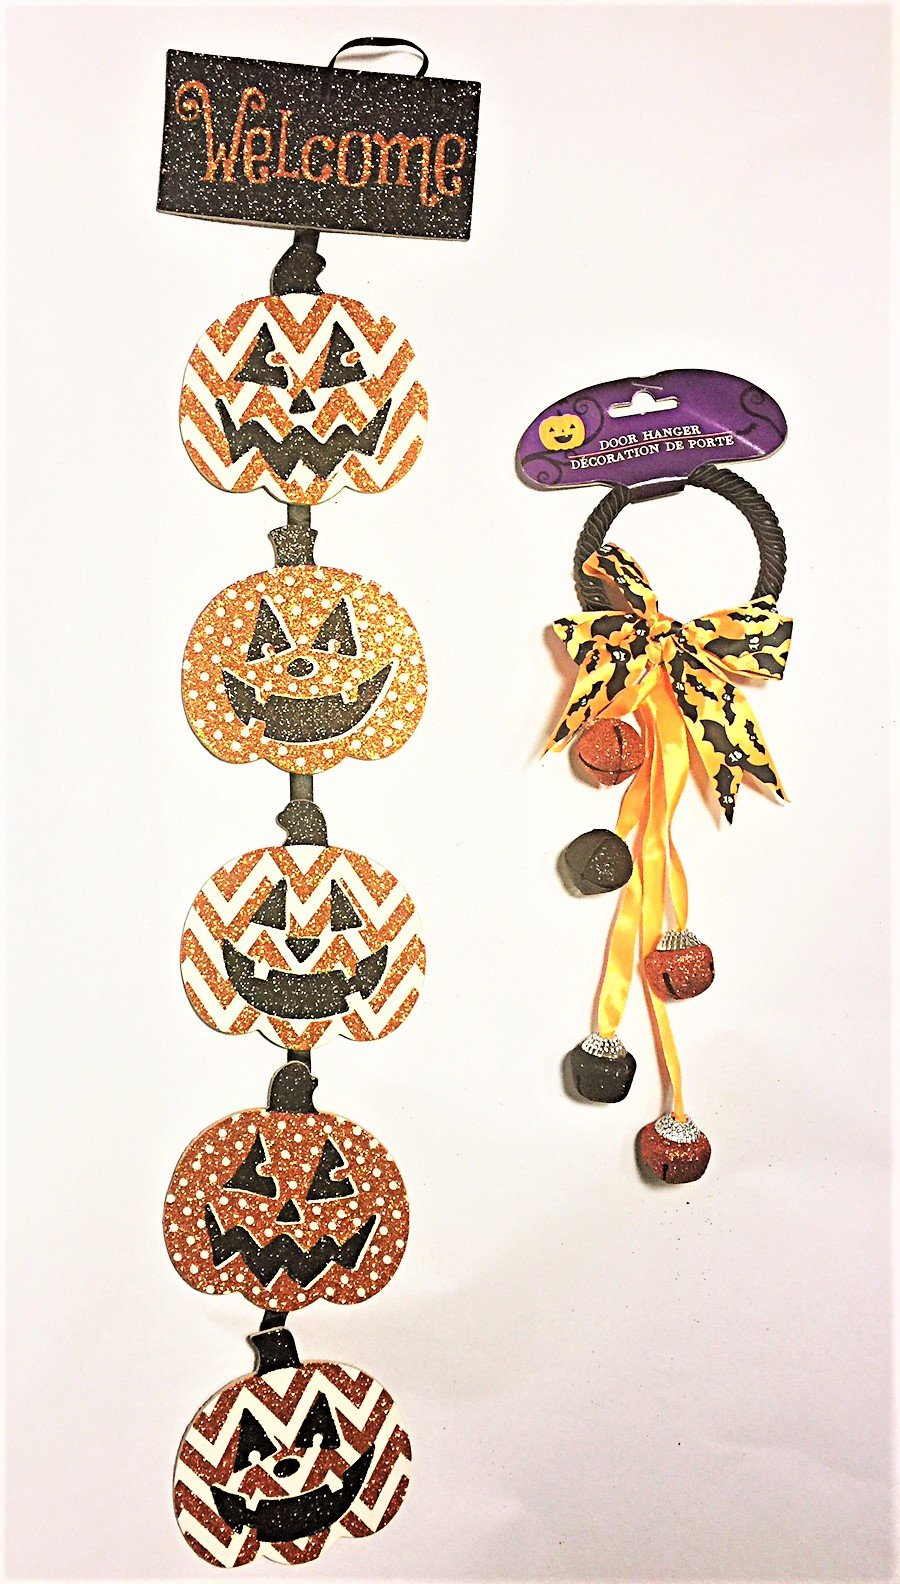 Decorative Stacked hanging jack-o-lanterns linked by ribbon, with coordinating door knob bells.